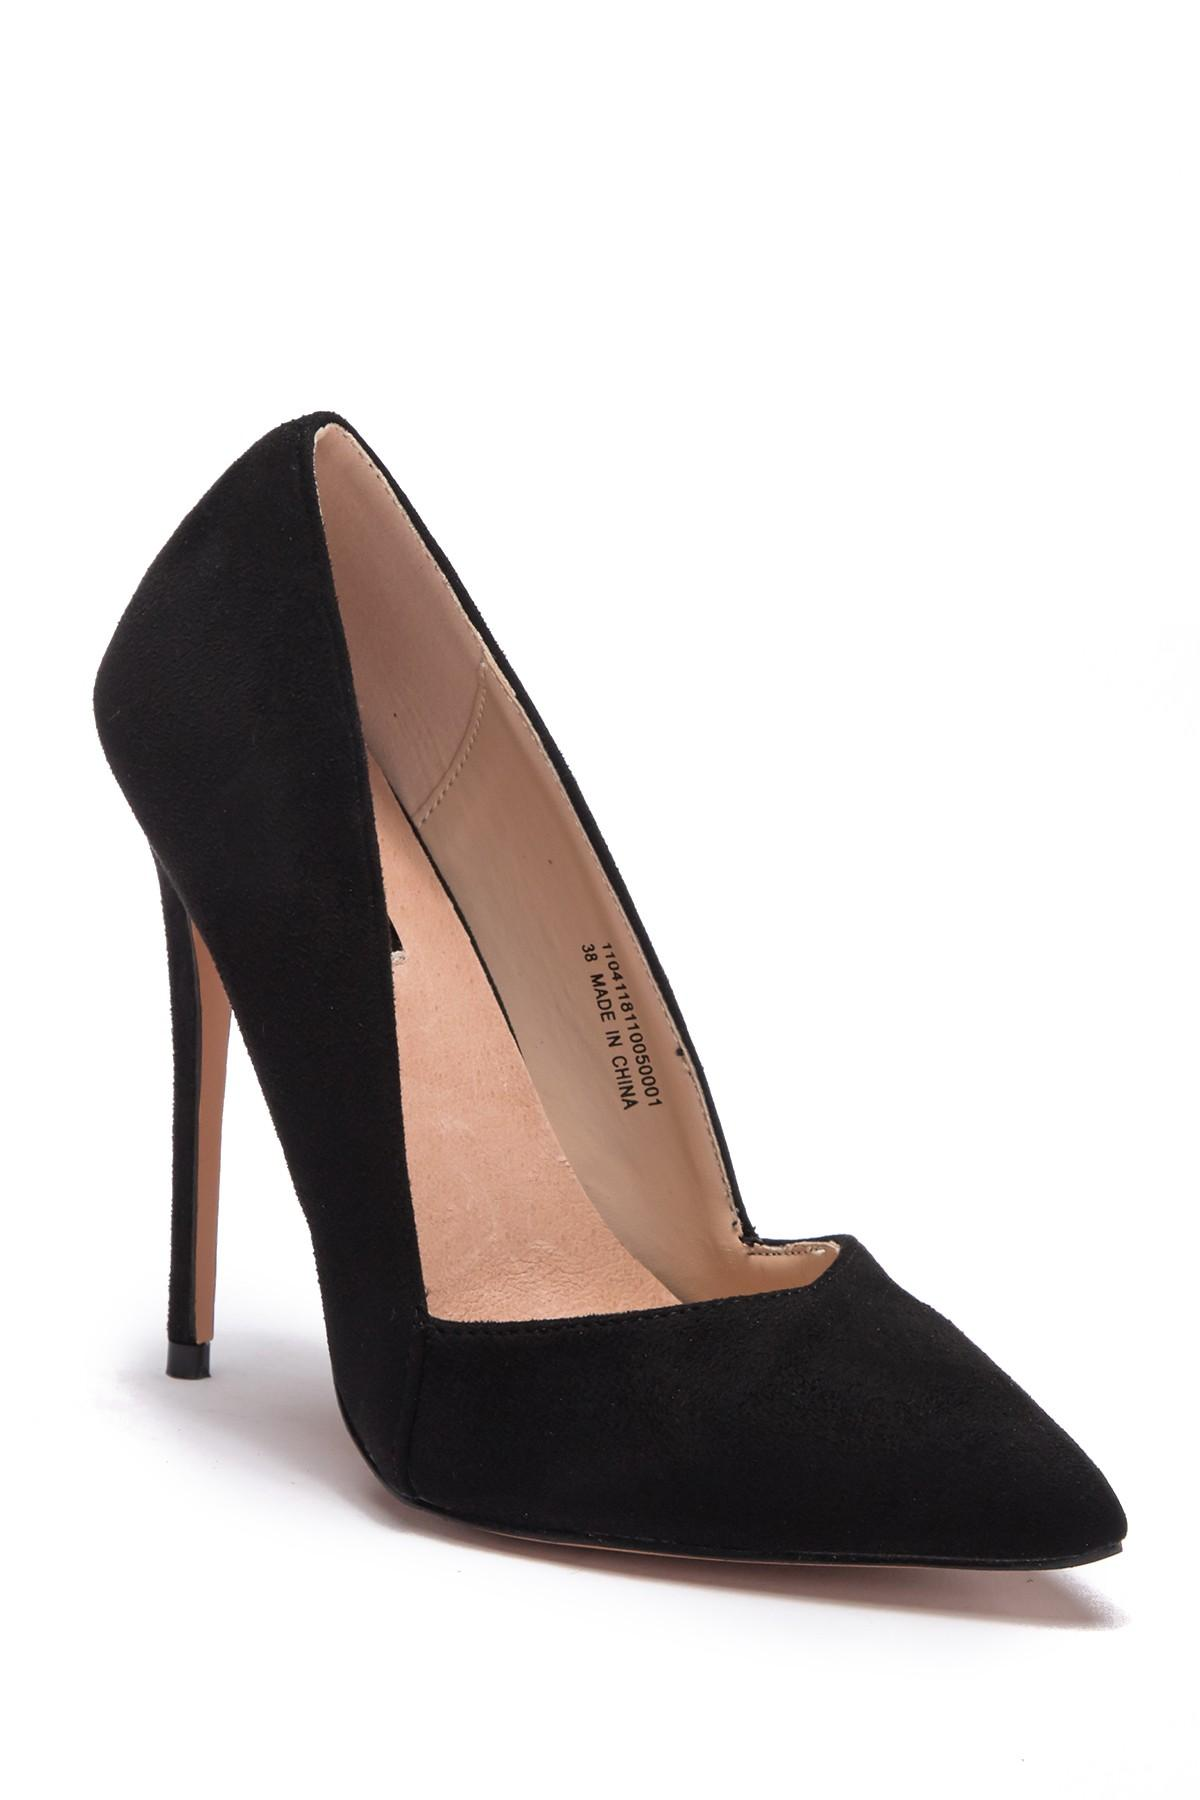 3a2bdc06848a Lyst - Lost Ink Alexa Low Cut Pump - Wide Width in Black